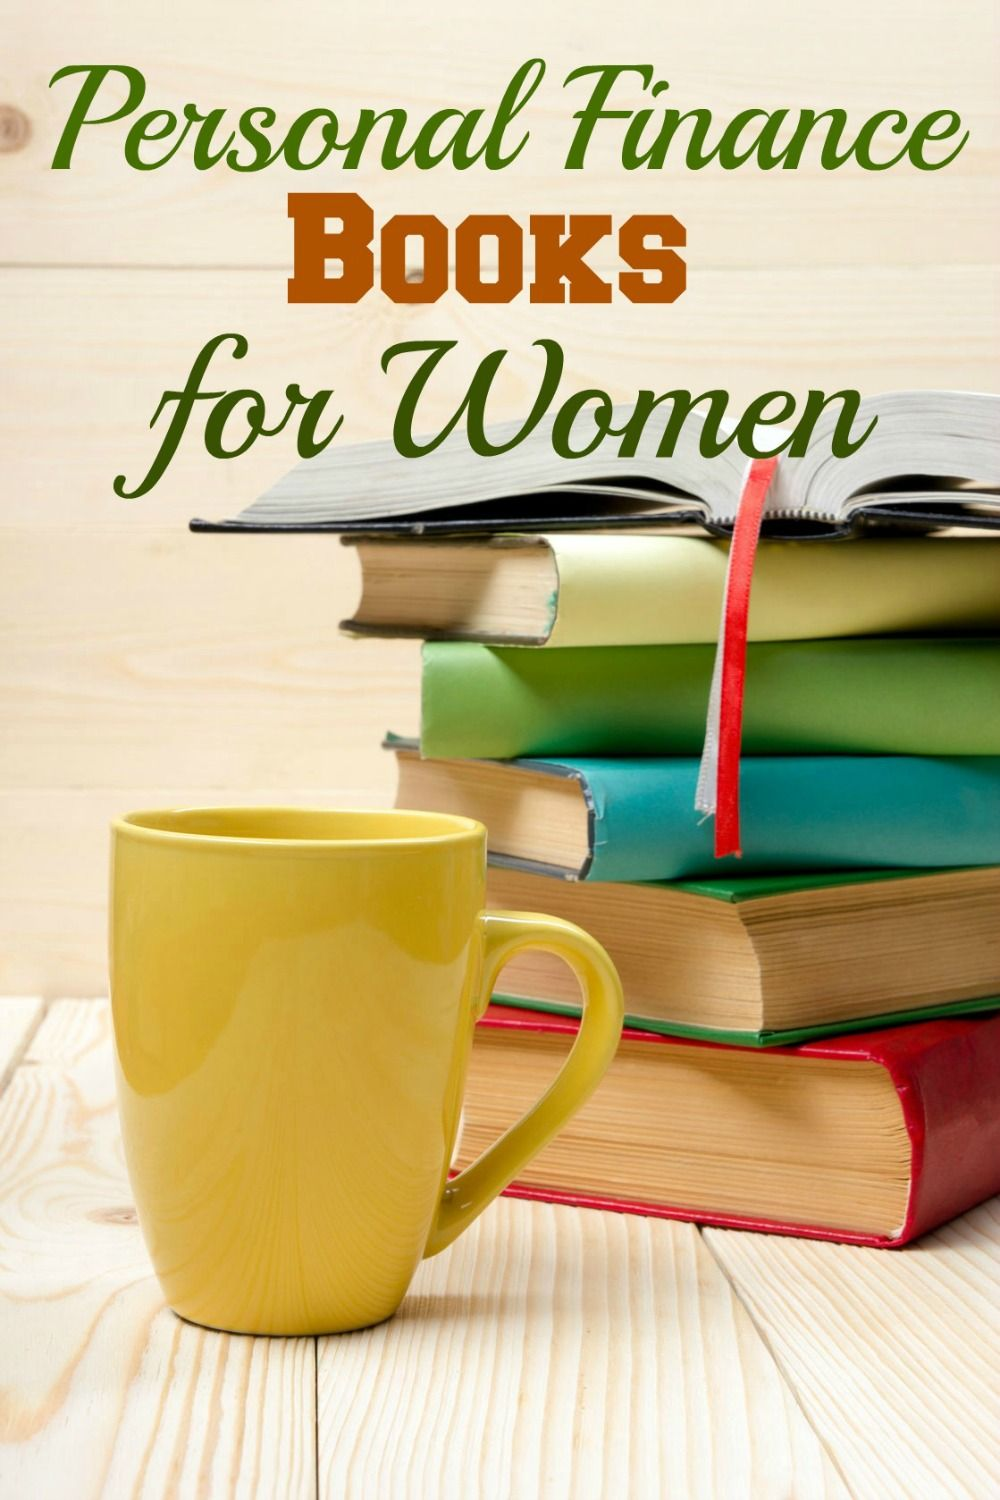 10 Personal Finance Books For Women Esavingsblogs Best Money Saving Articles Finance Books